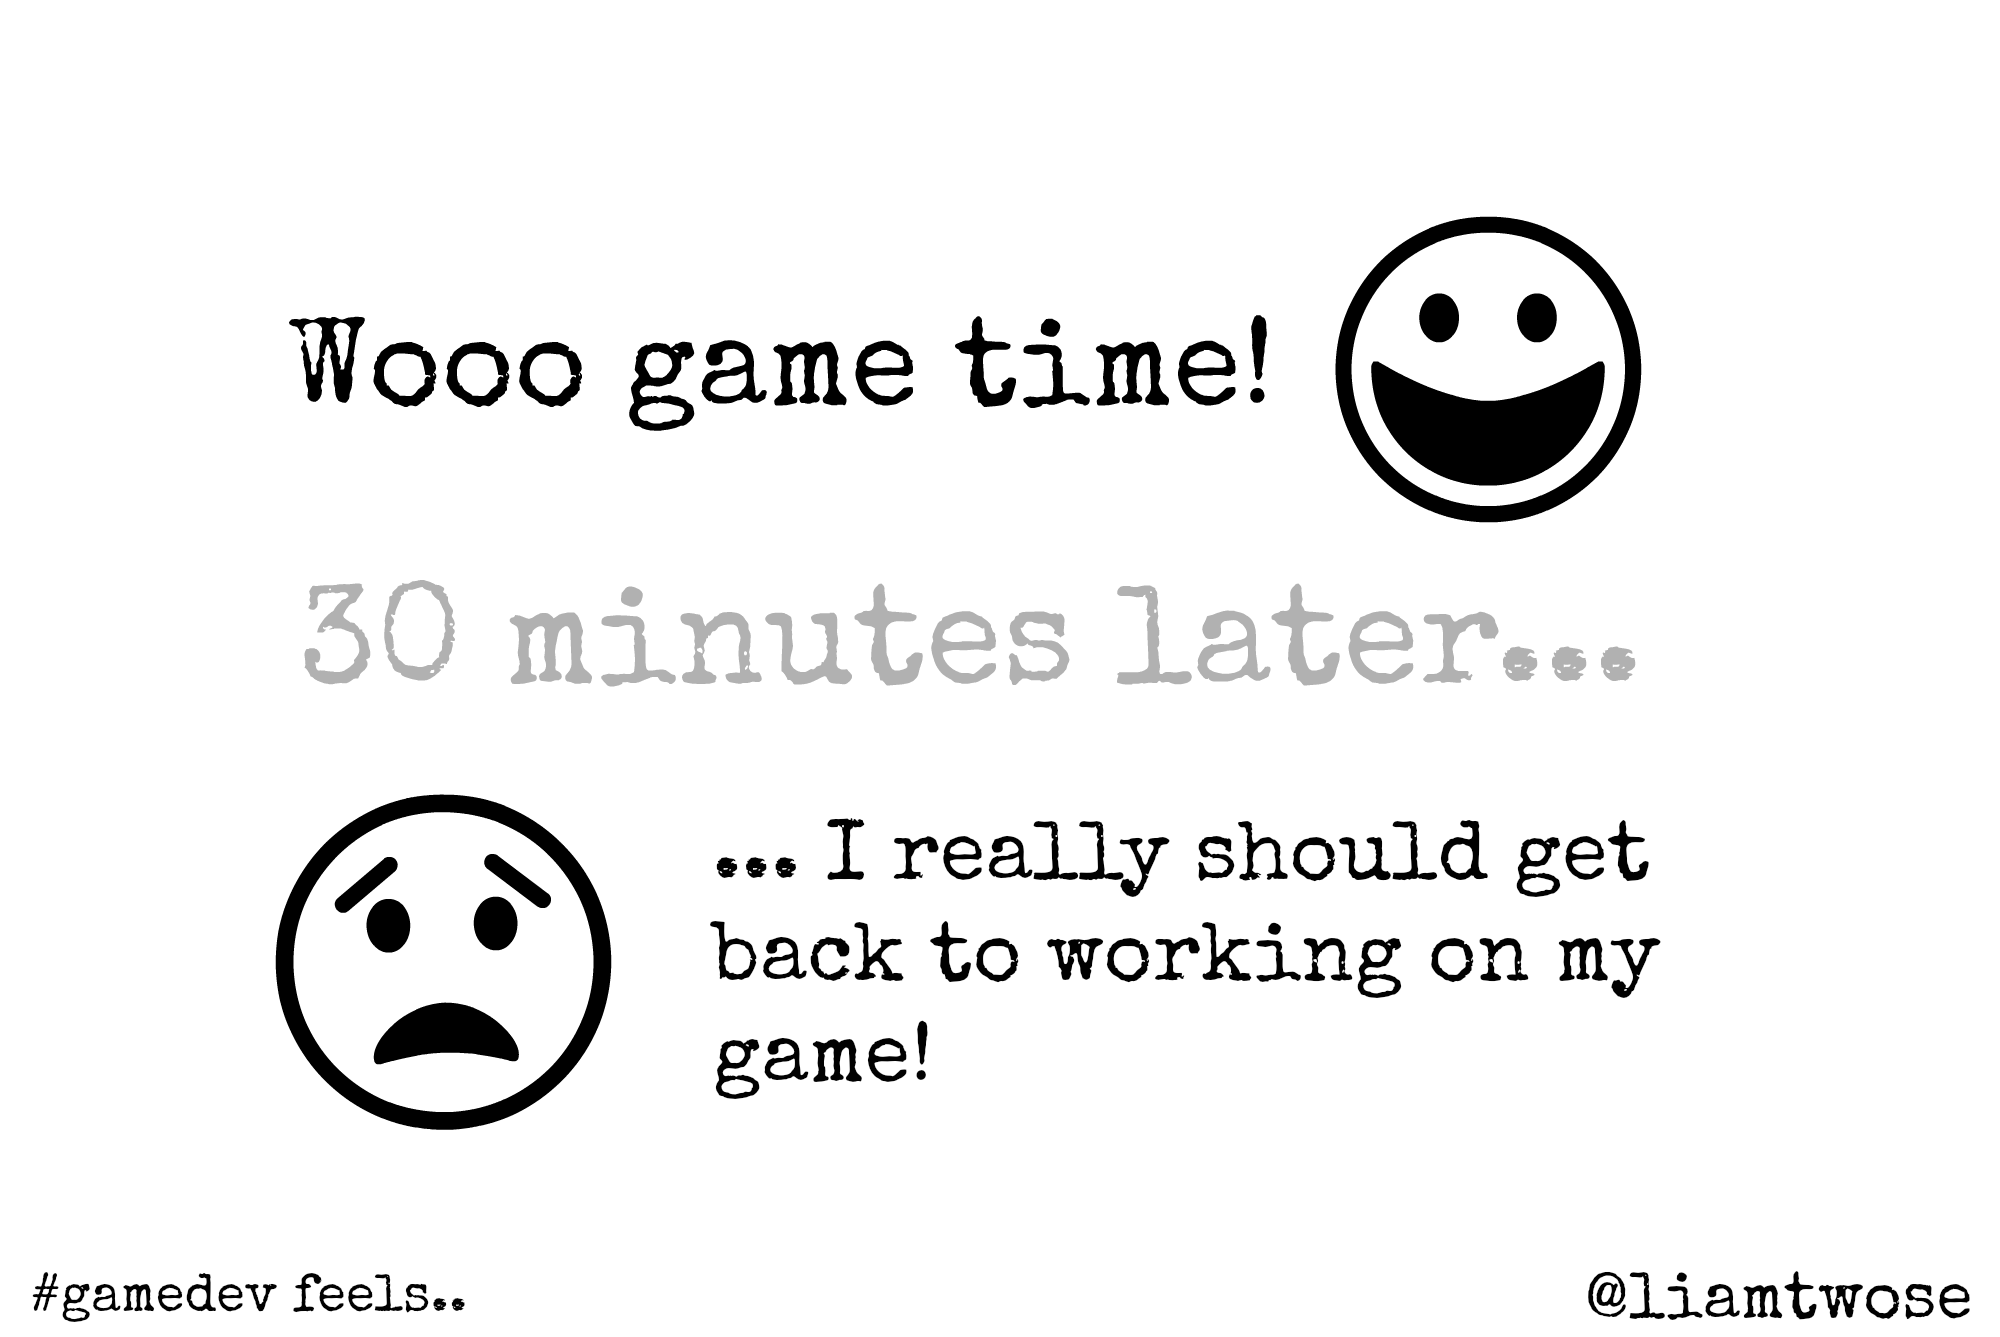 When #gamedev's try to play games... Woo game time! ... ... 30 minutes later ... ... I really should get back to working on my game!